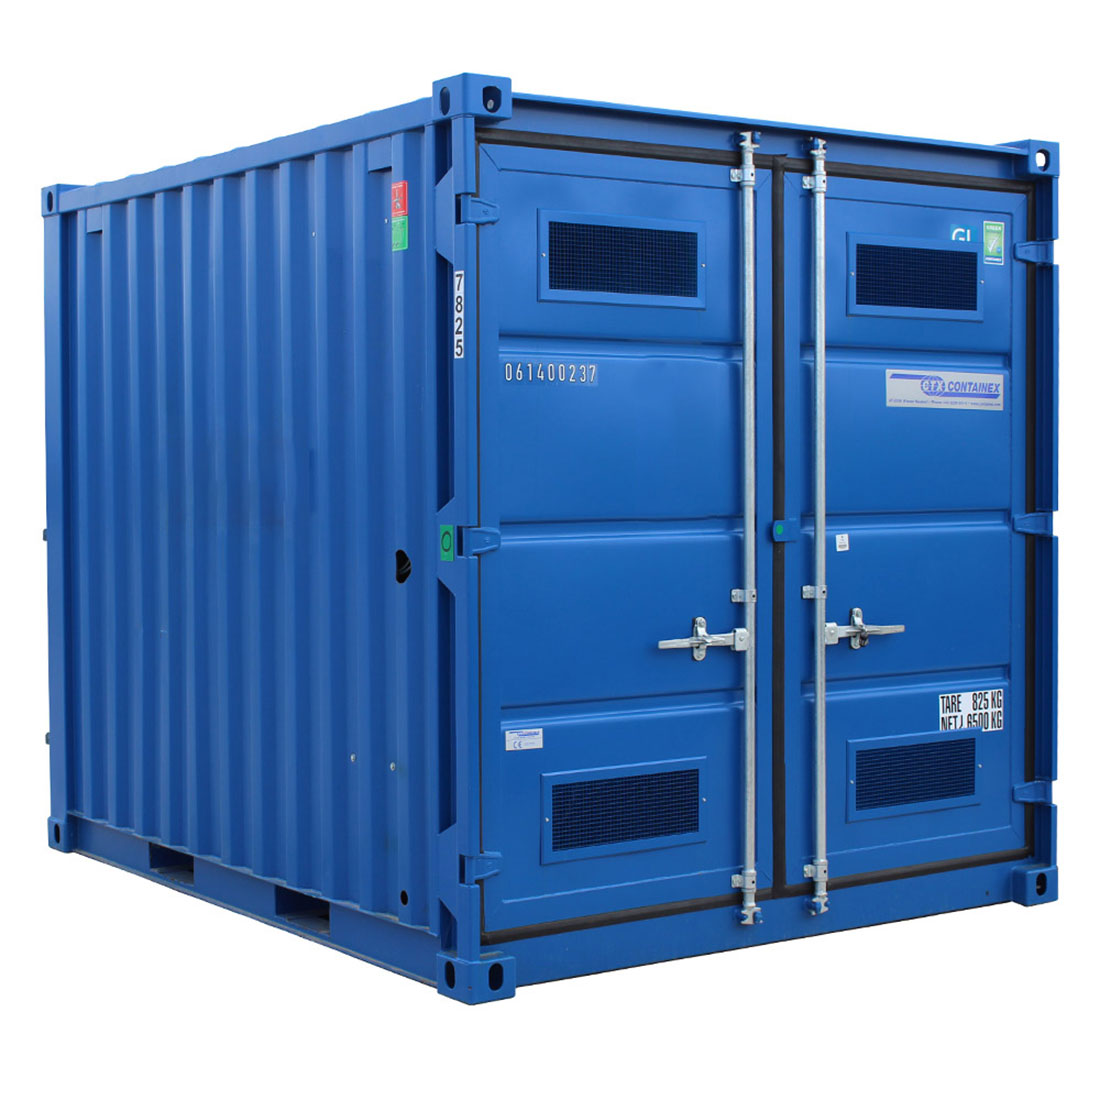 500kW Containerised Boiler